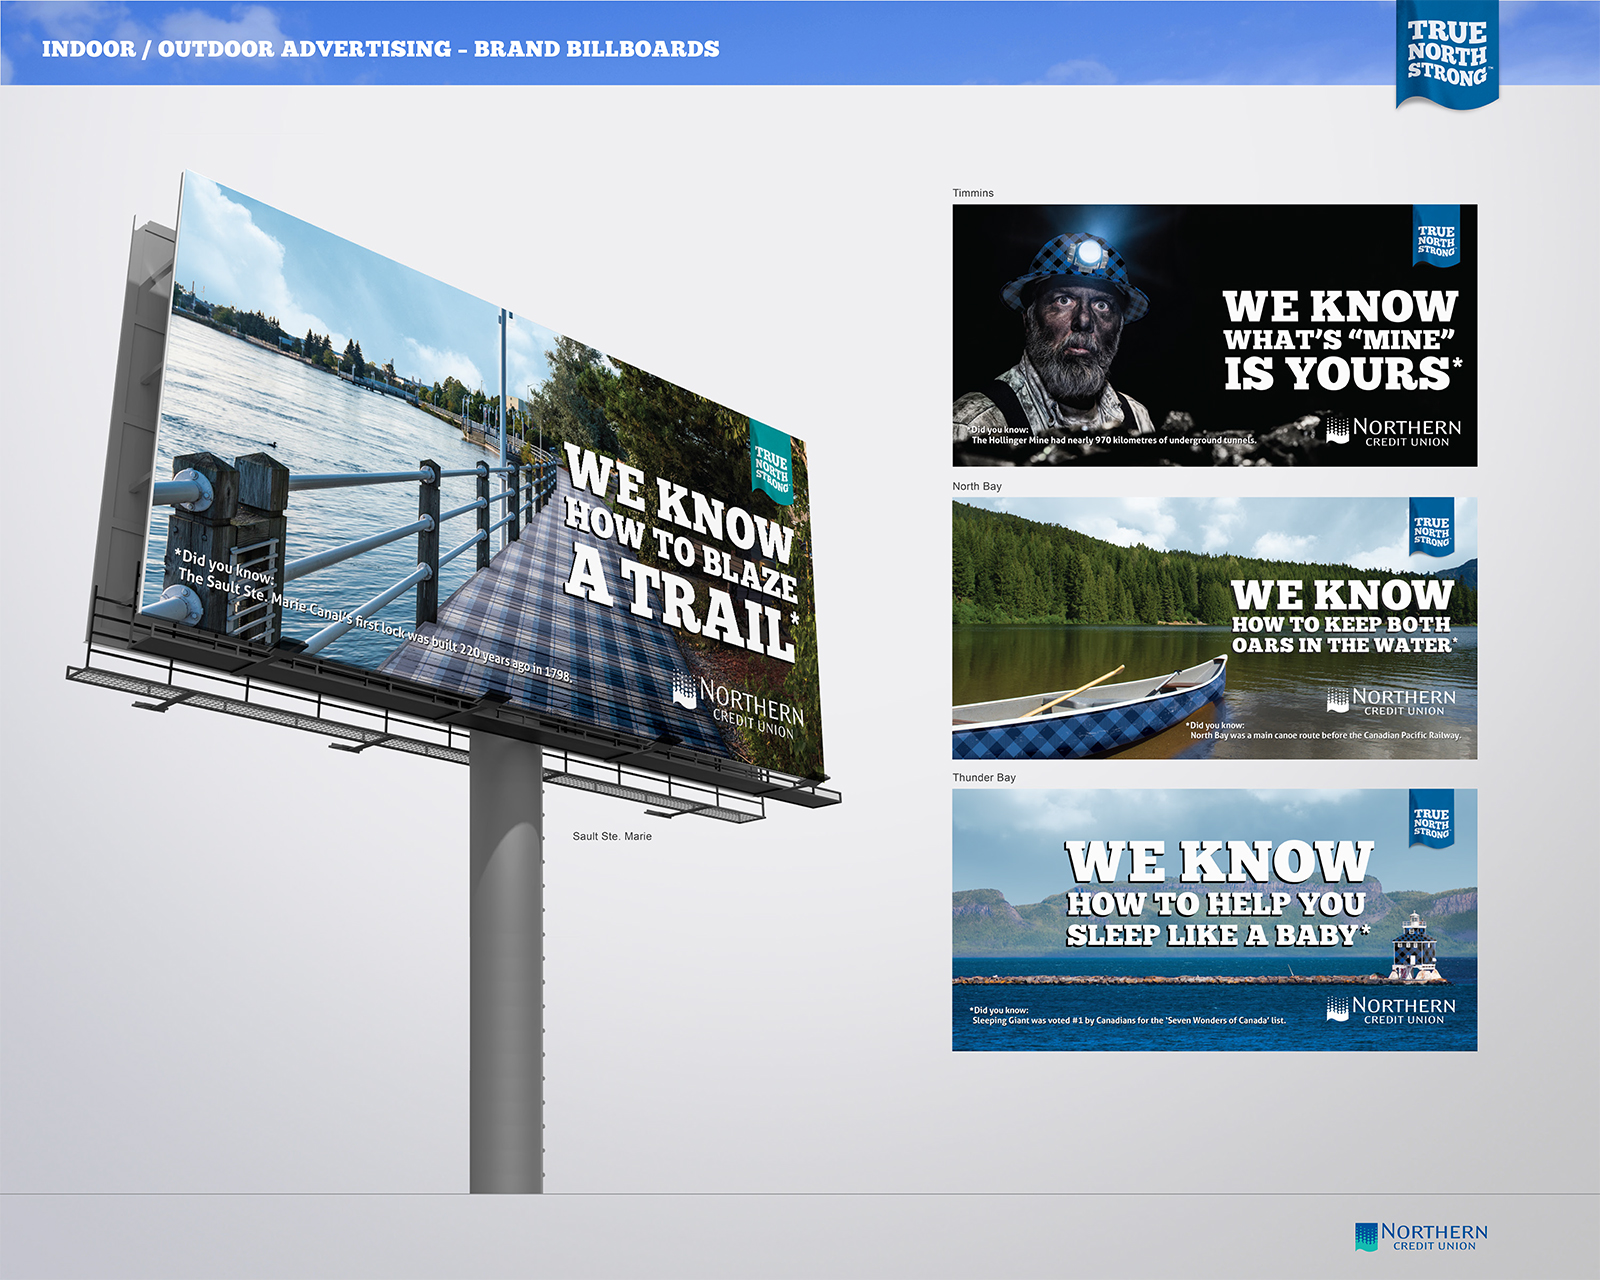 Billboard showing a plaid-covered lake side walking path with a railing.